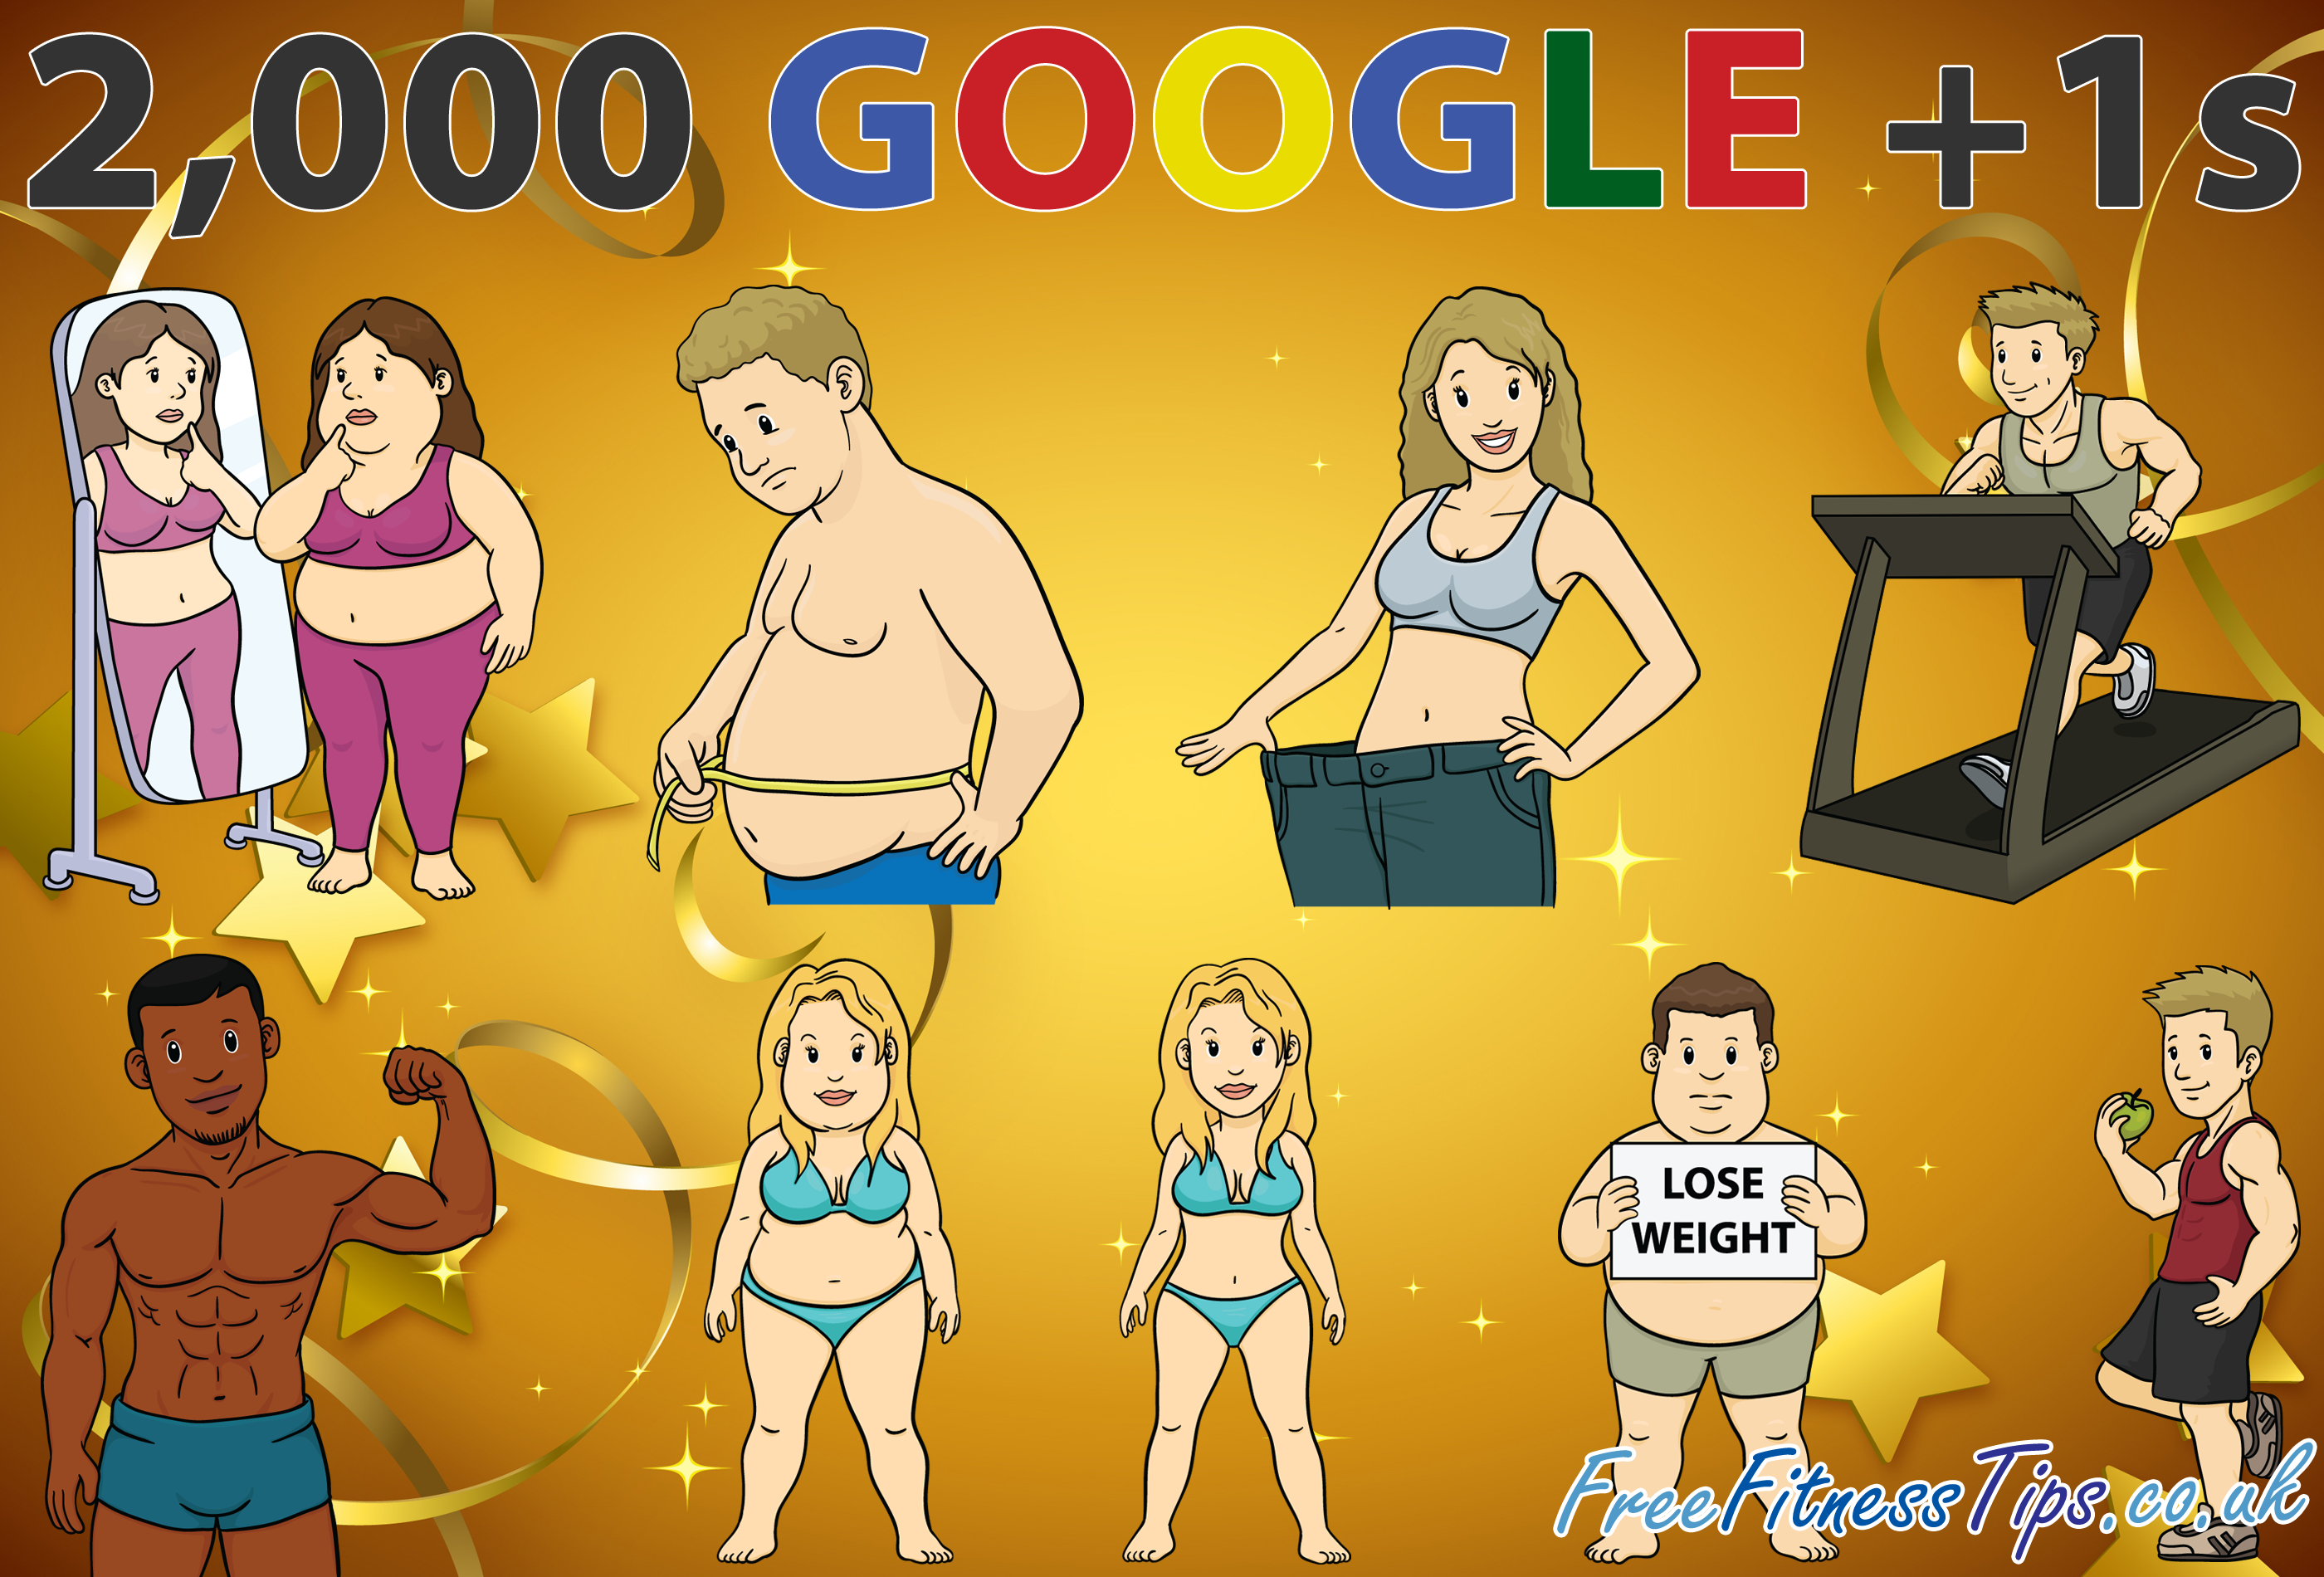 Free Fitness Tips has just reached 2,000 Google +1s. Click the pic to Circle & +1 the Free Fitness Tips page on Google Plus.